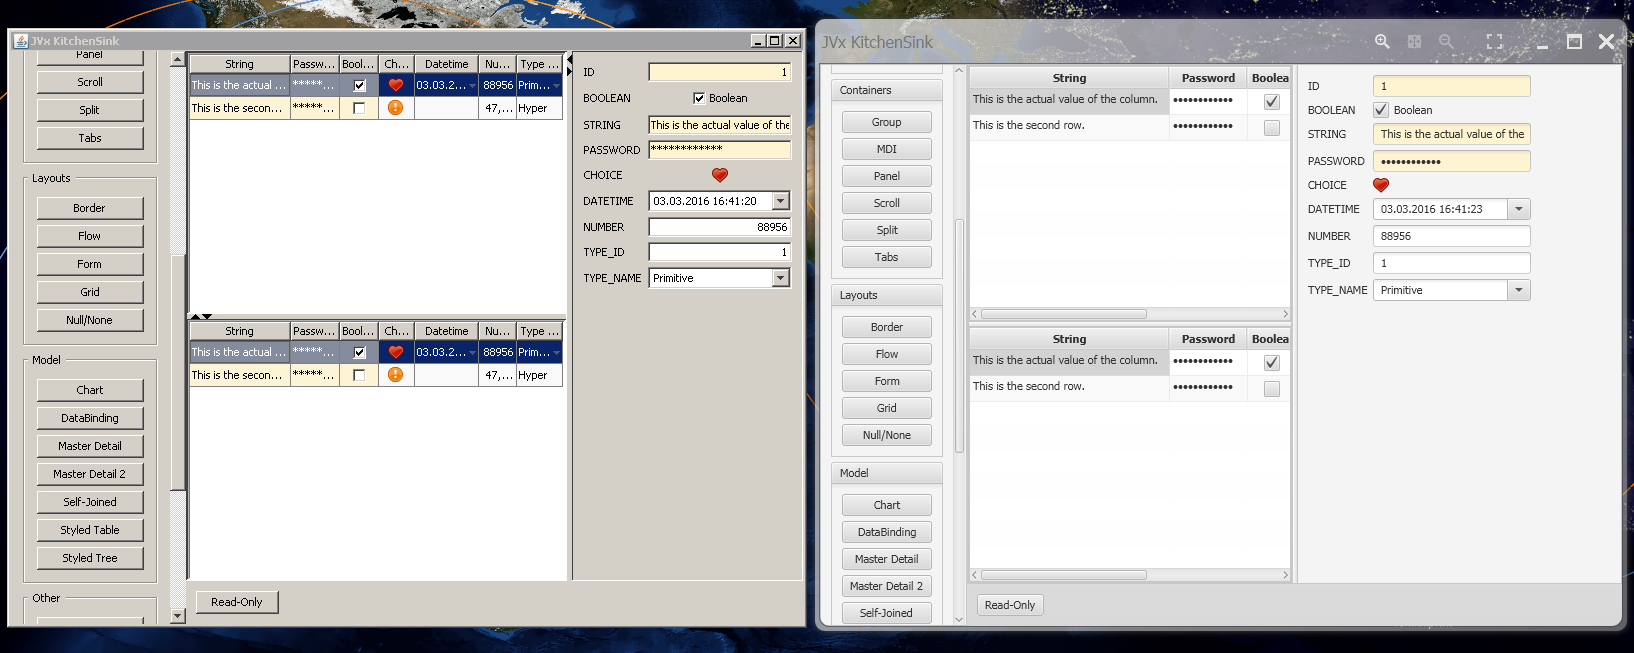 The JVx Kitchensink Application, Swing and JavaFX running side by side.